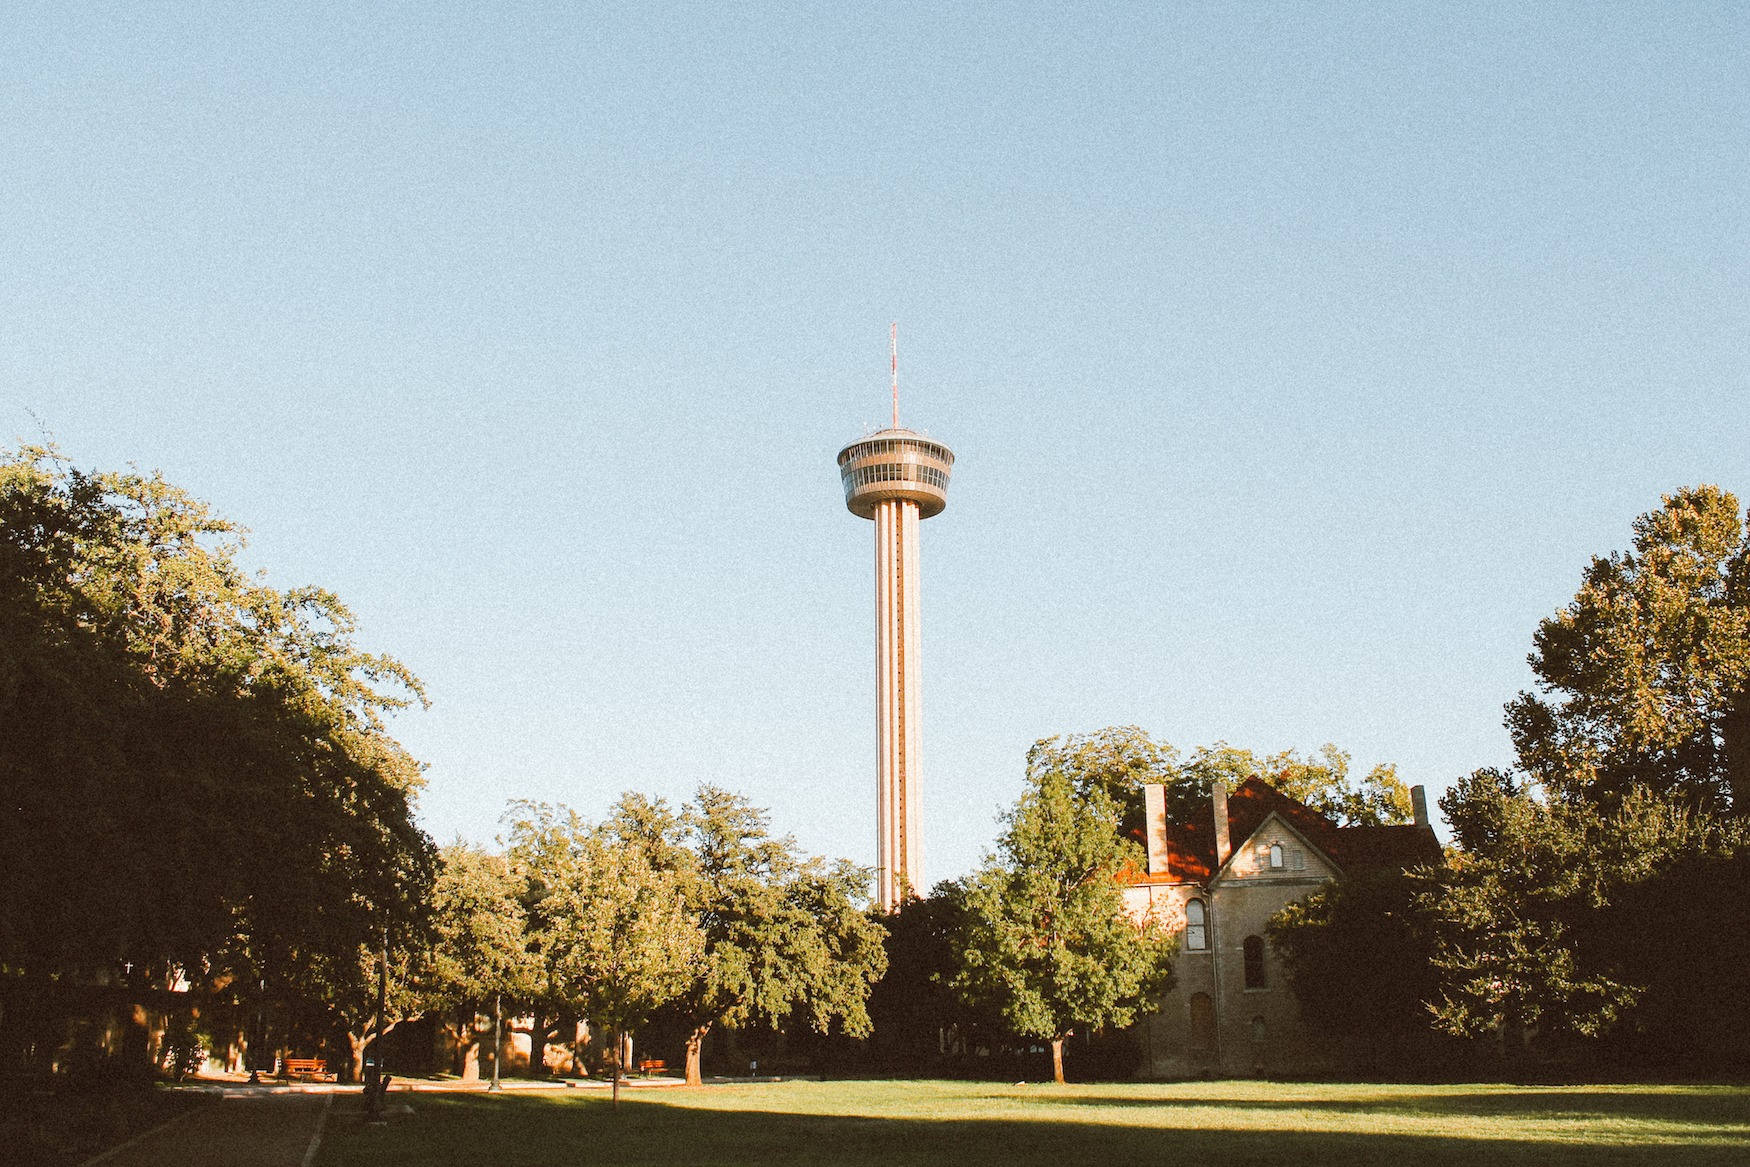 Sunset in San Antonio at The Tower of The Americas (1)